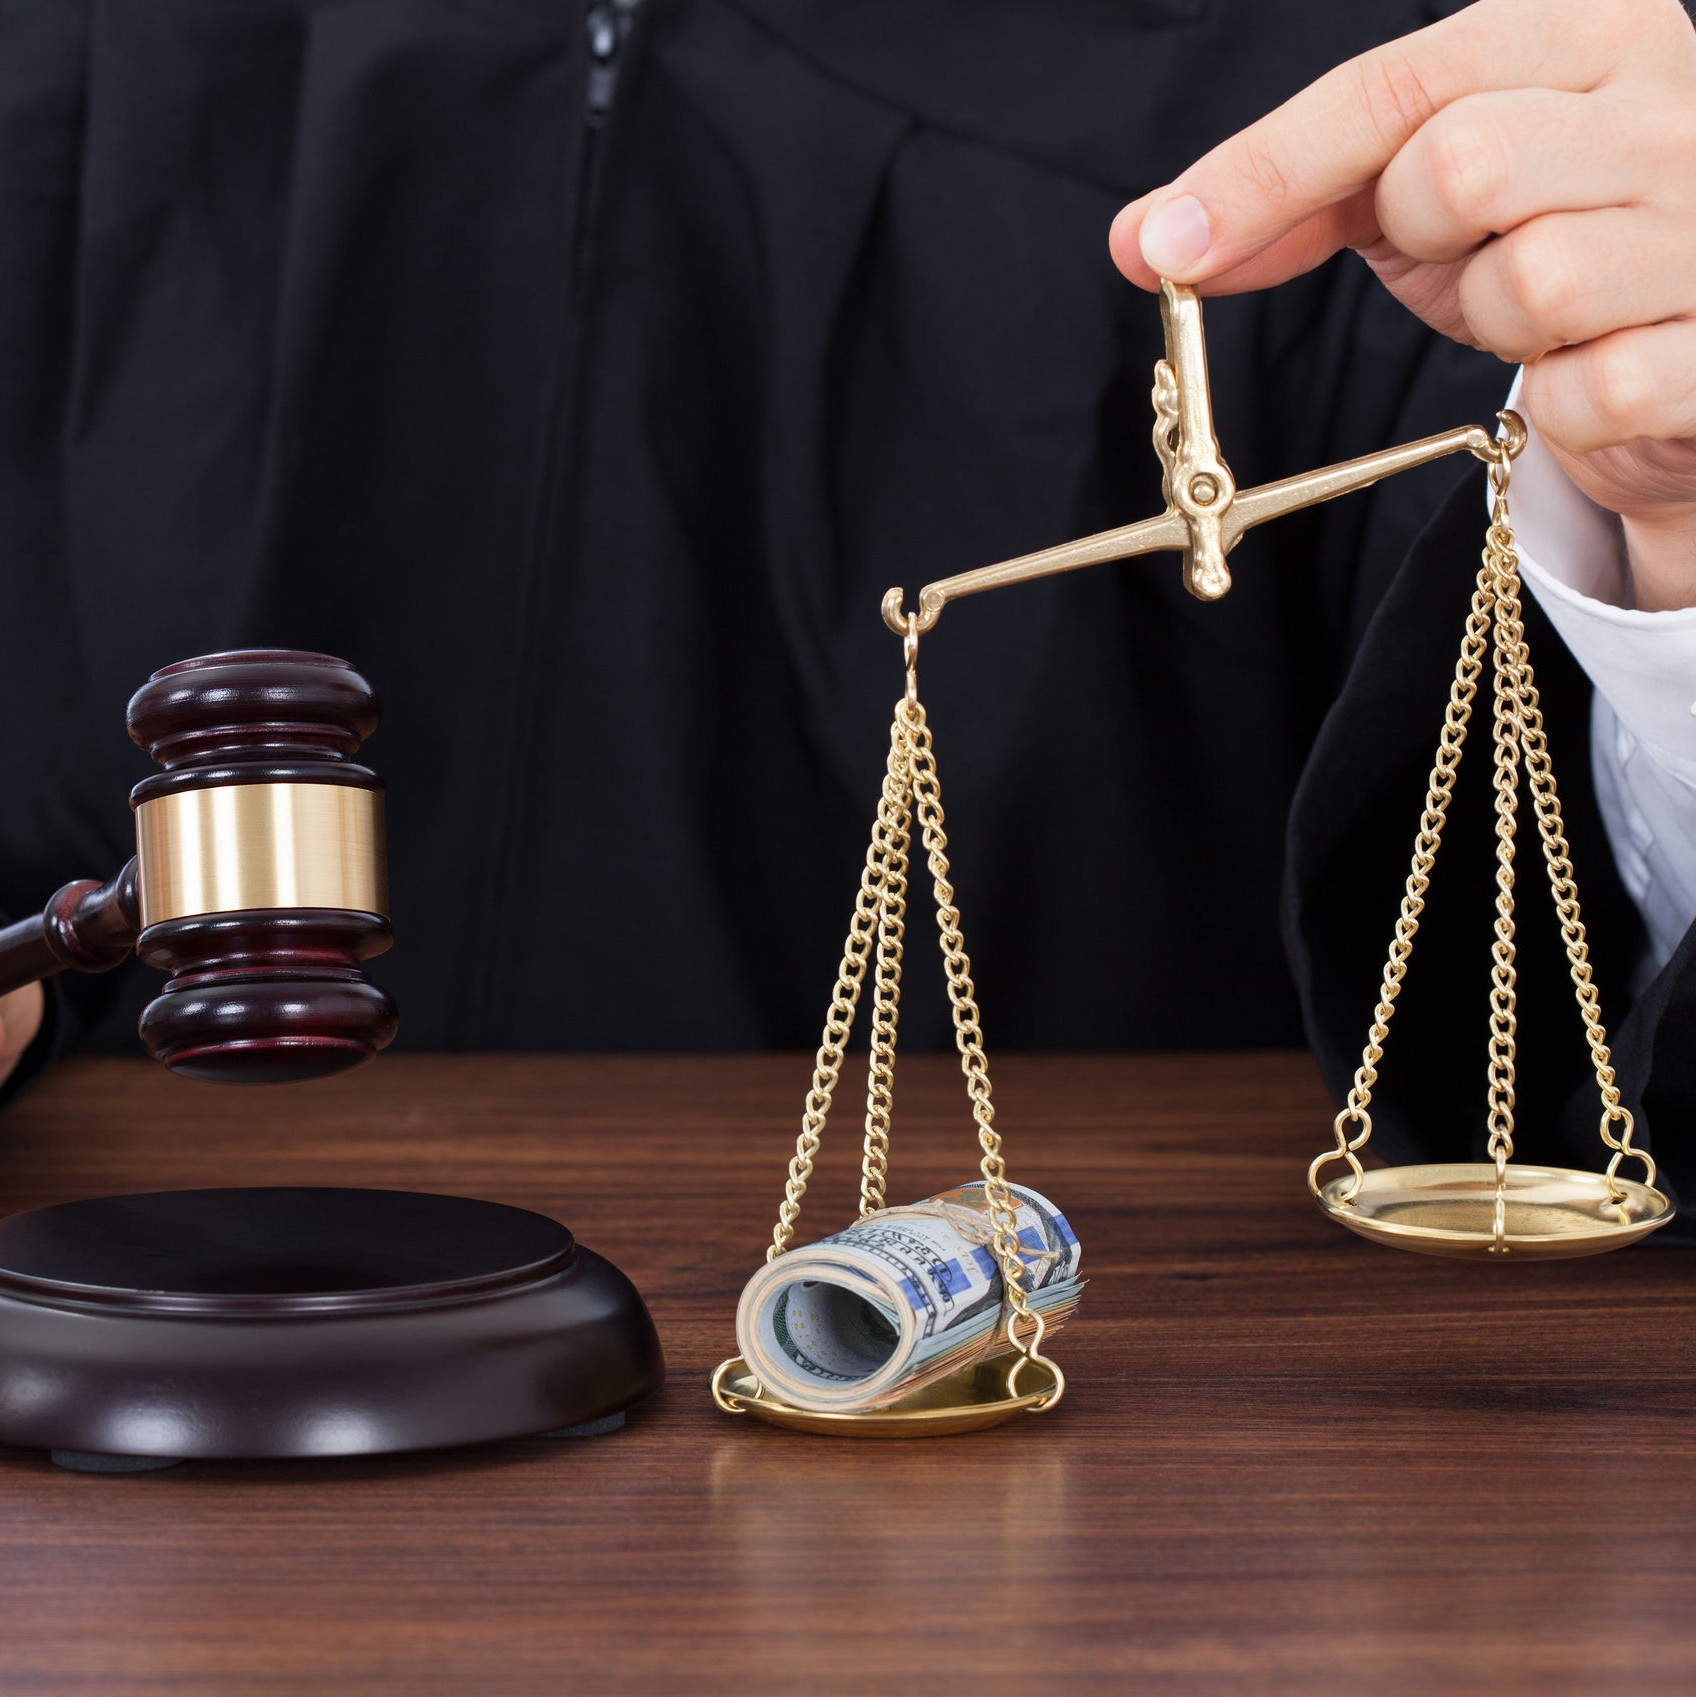 a judge holds a gavel and a set of scales with money in one side